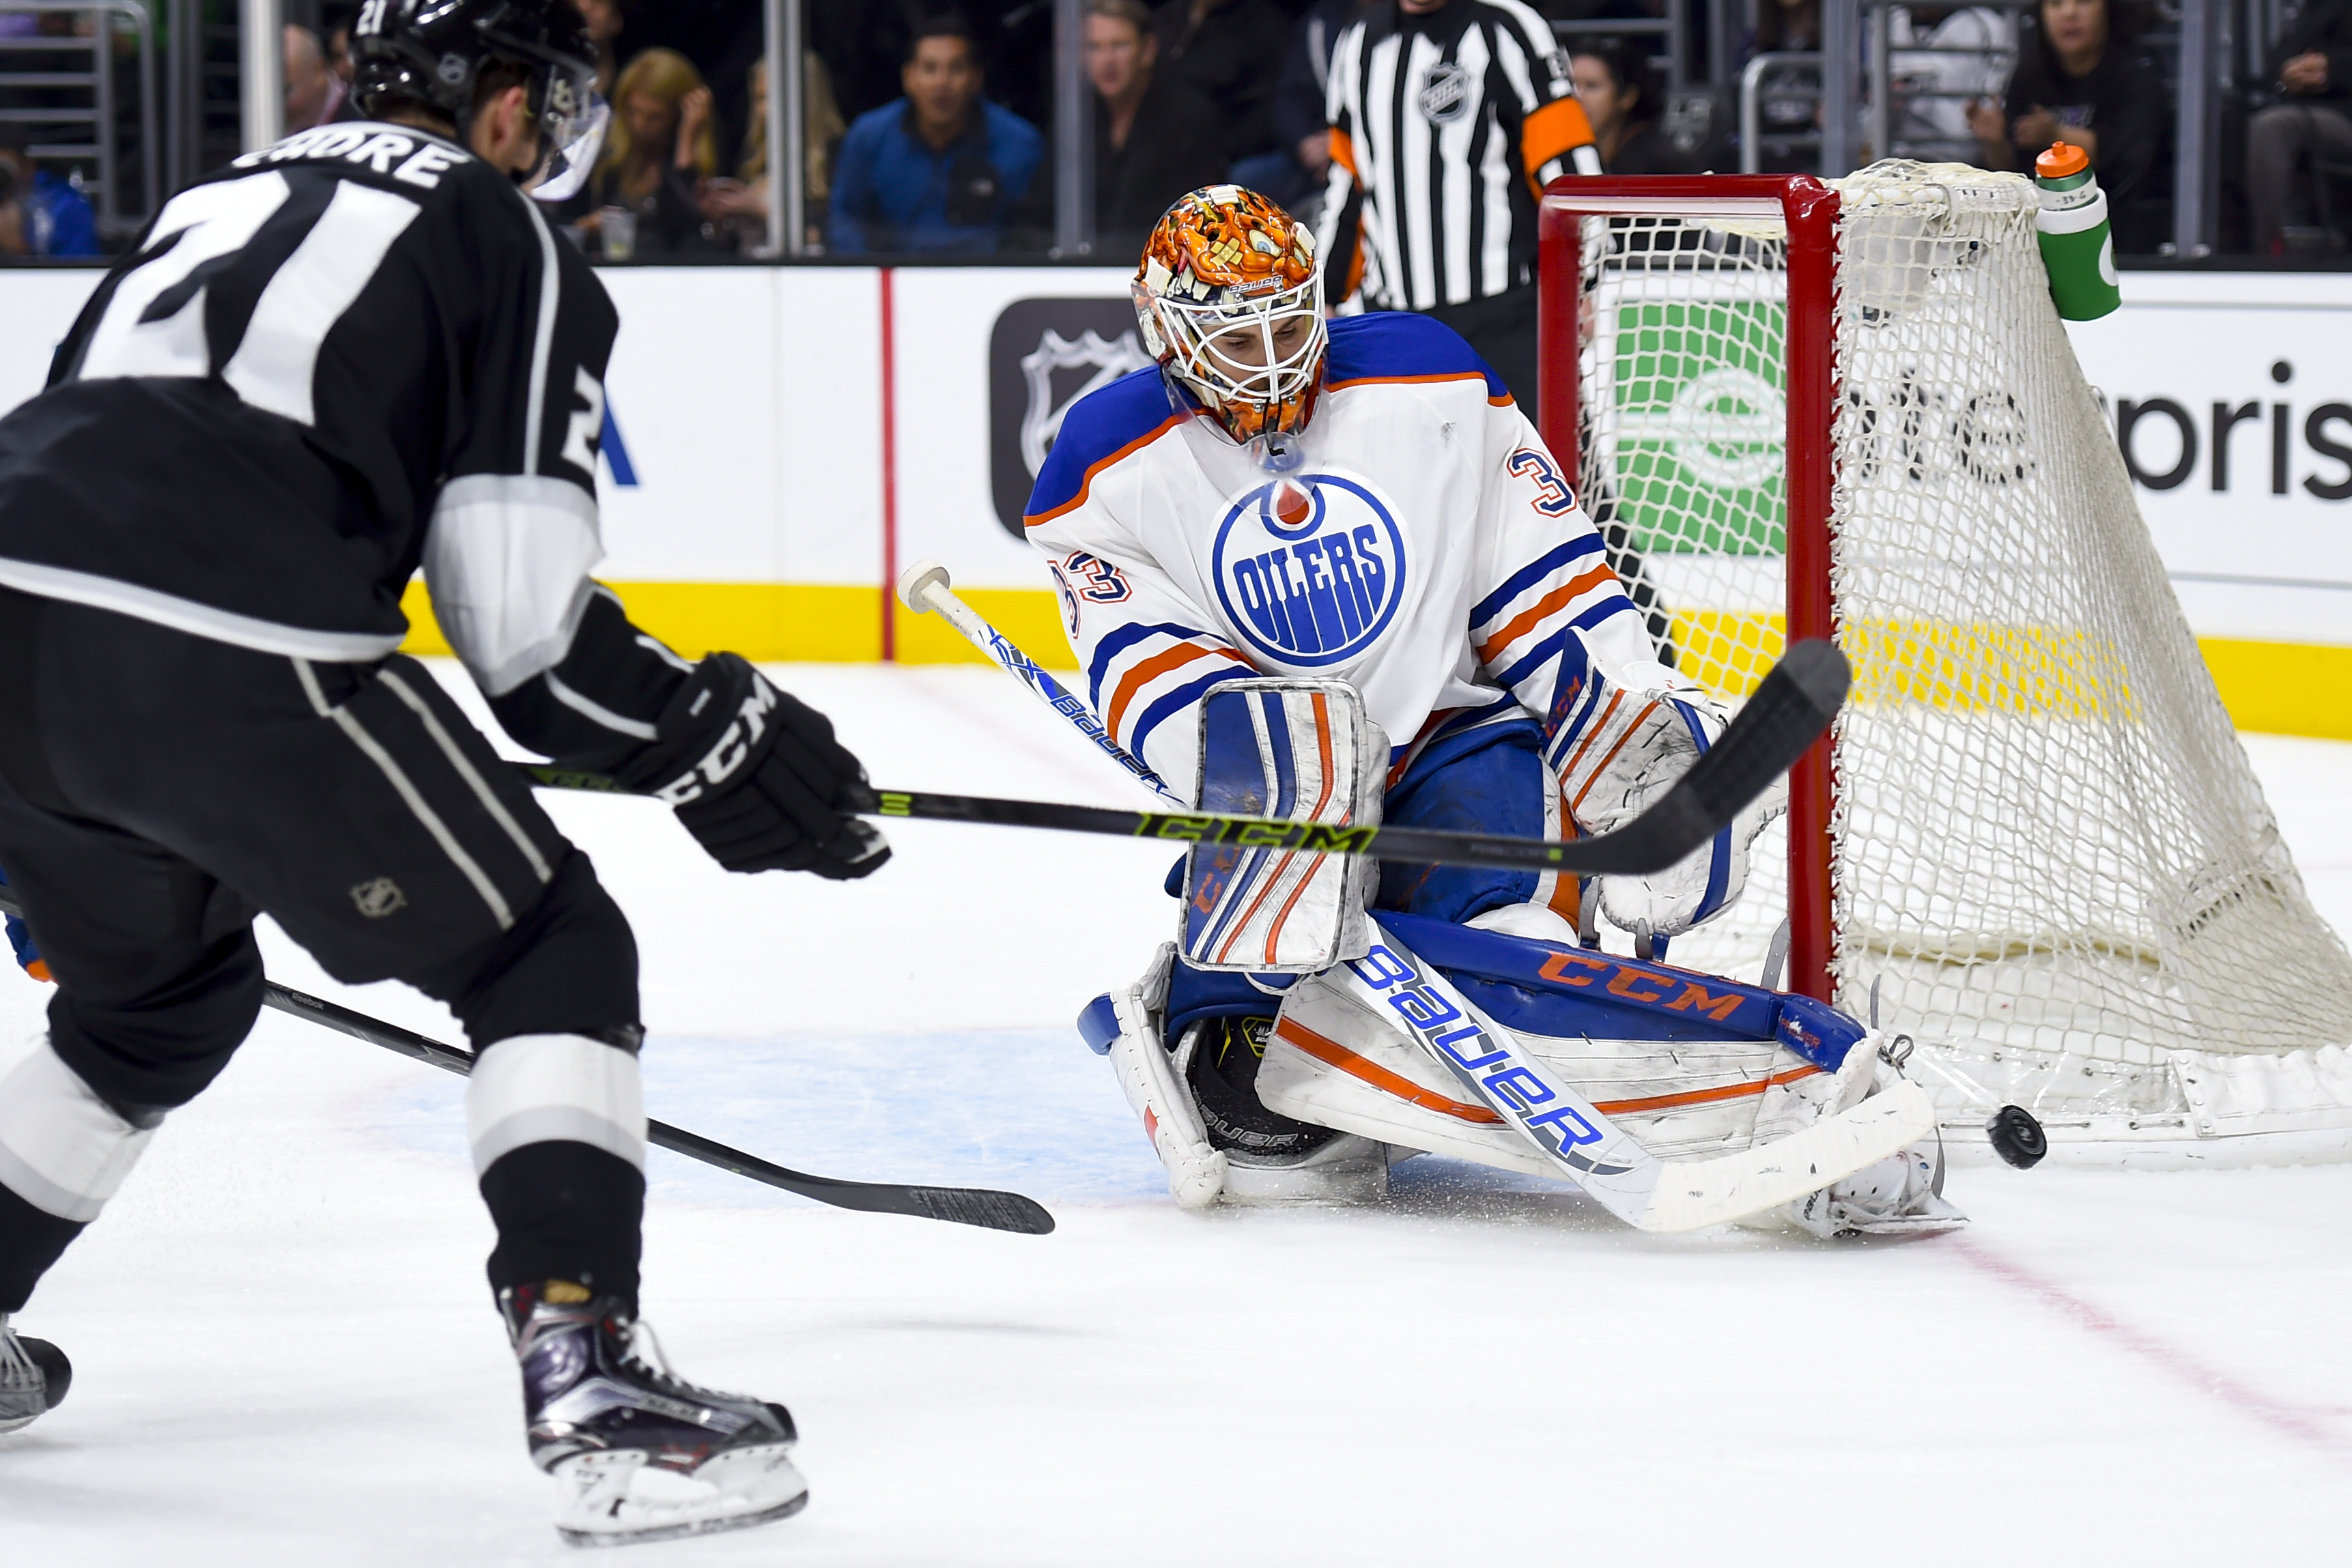 Edmonton Oilers goalie Cam Talbot (33) blocks a shot from Los Angeles Kings center Nick Shore (21) during the second period of an NHL hockey game Thursday, Feb. 25, 2016, in Los Angeles. (AP Photo/Gus Ruelas)